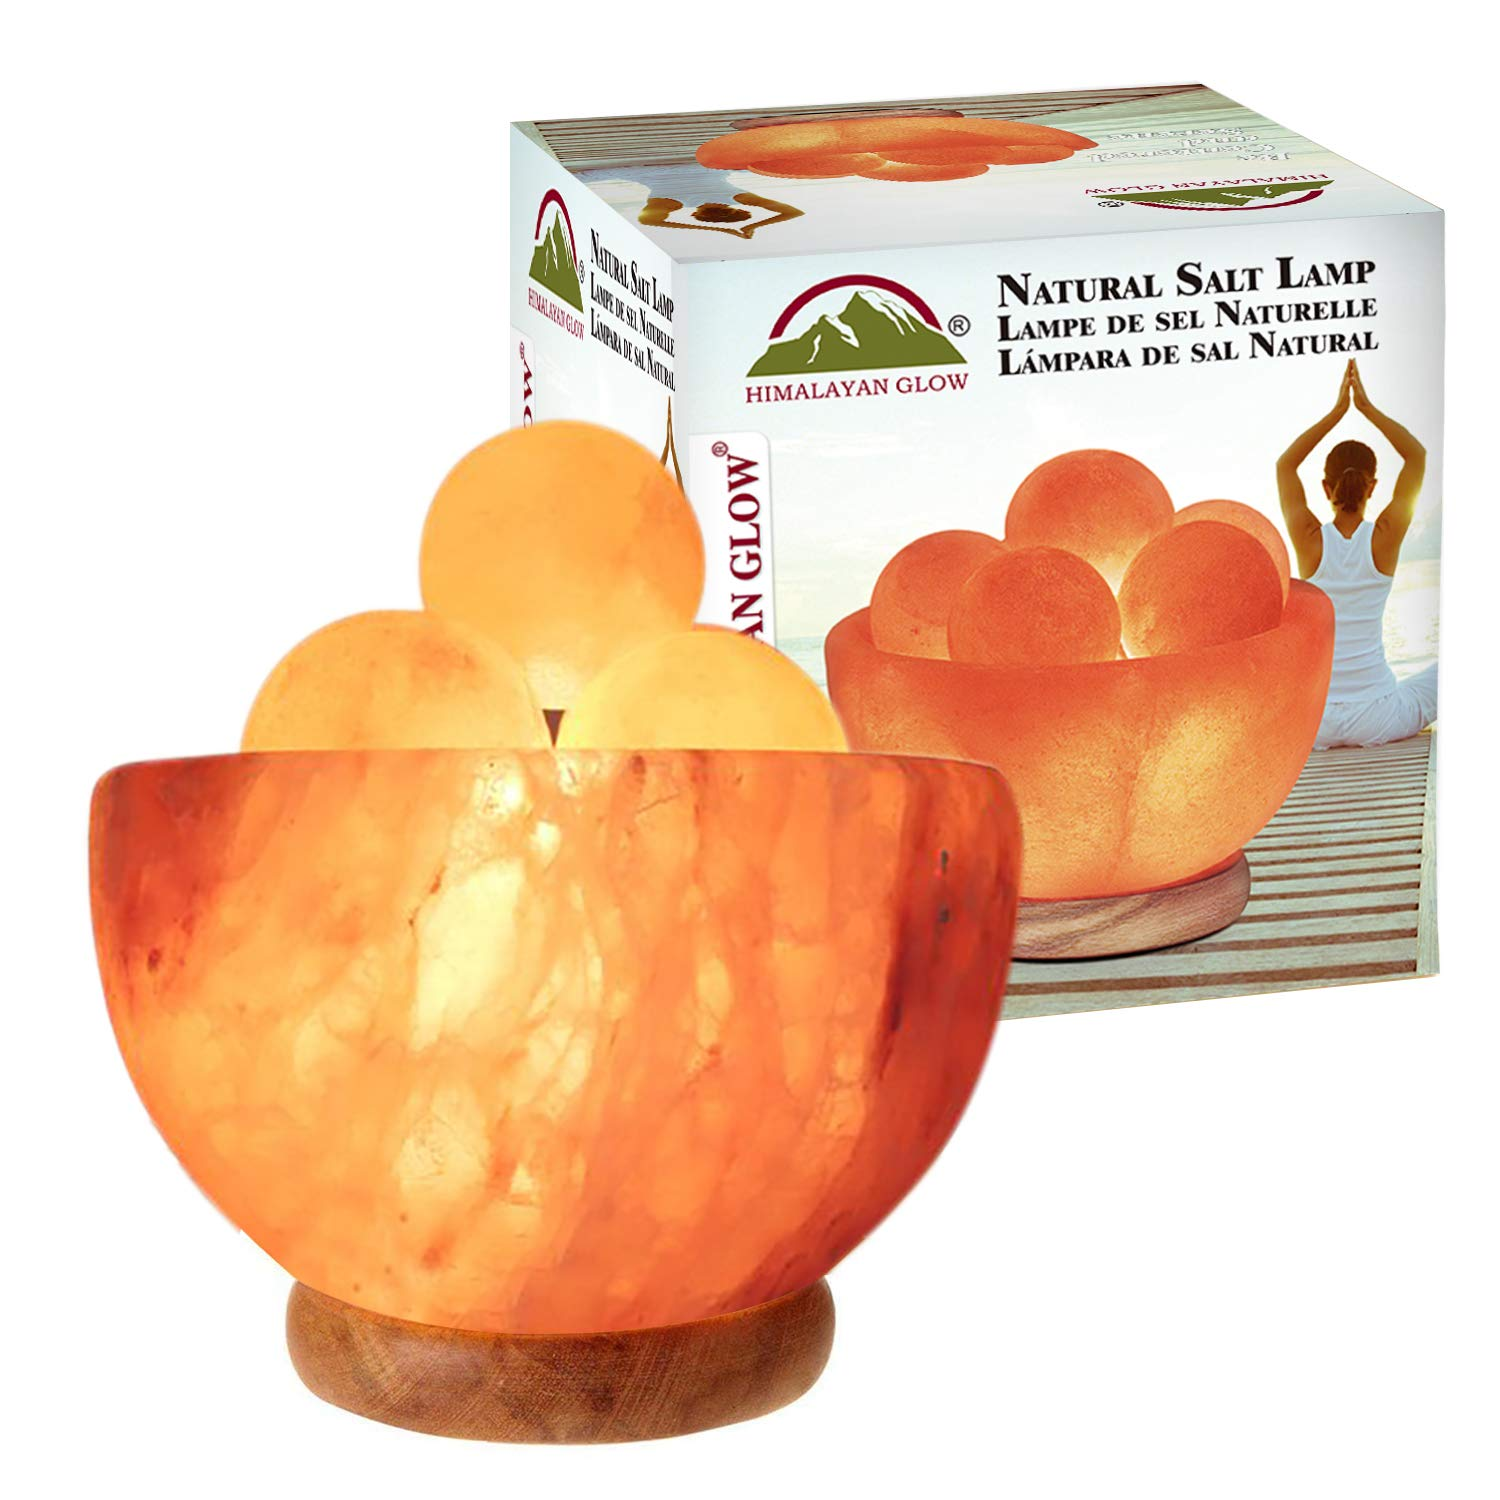 Himalayan Glow Bowl Massage Ball Salt lamp with Wooden Base and Dimmer Switch by WBM, 10 lbs, Pink 1328